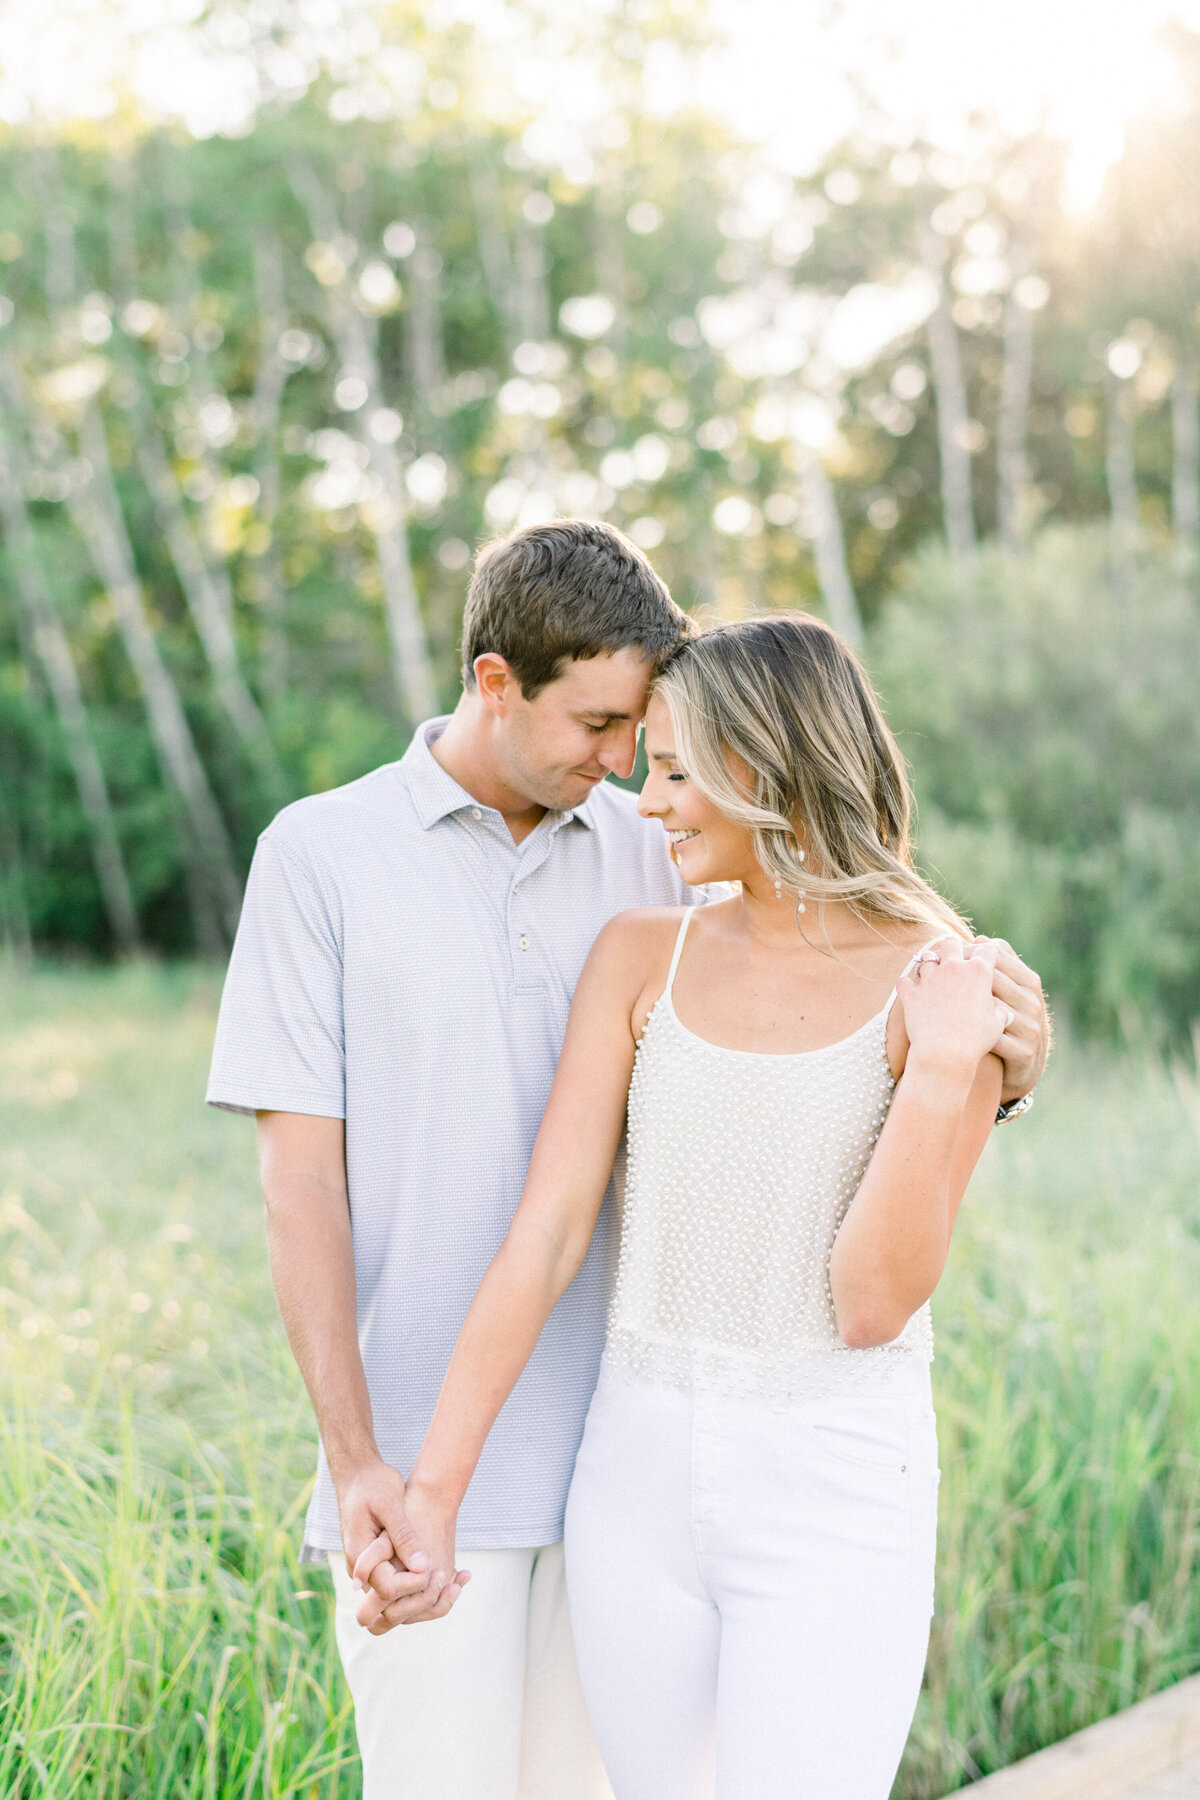 Minnesota engagement photos, Minnesota wedding photographer, Minneapolis engagement photos, Minneapolis wedding photographer, St Cloud engagement photos